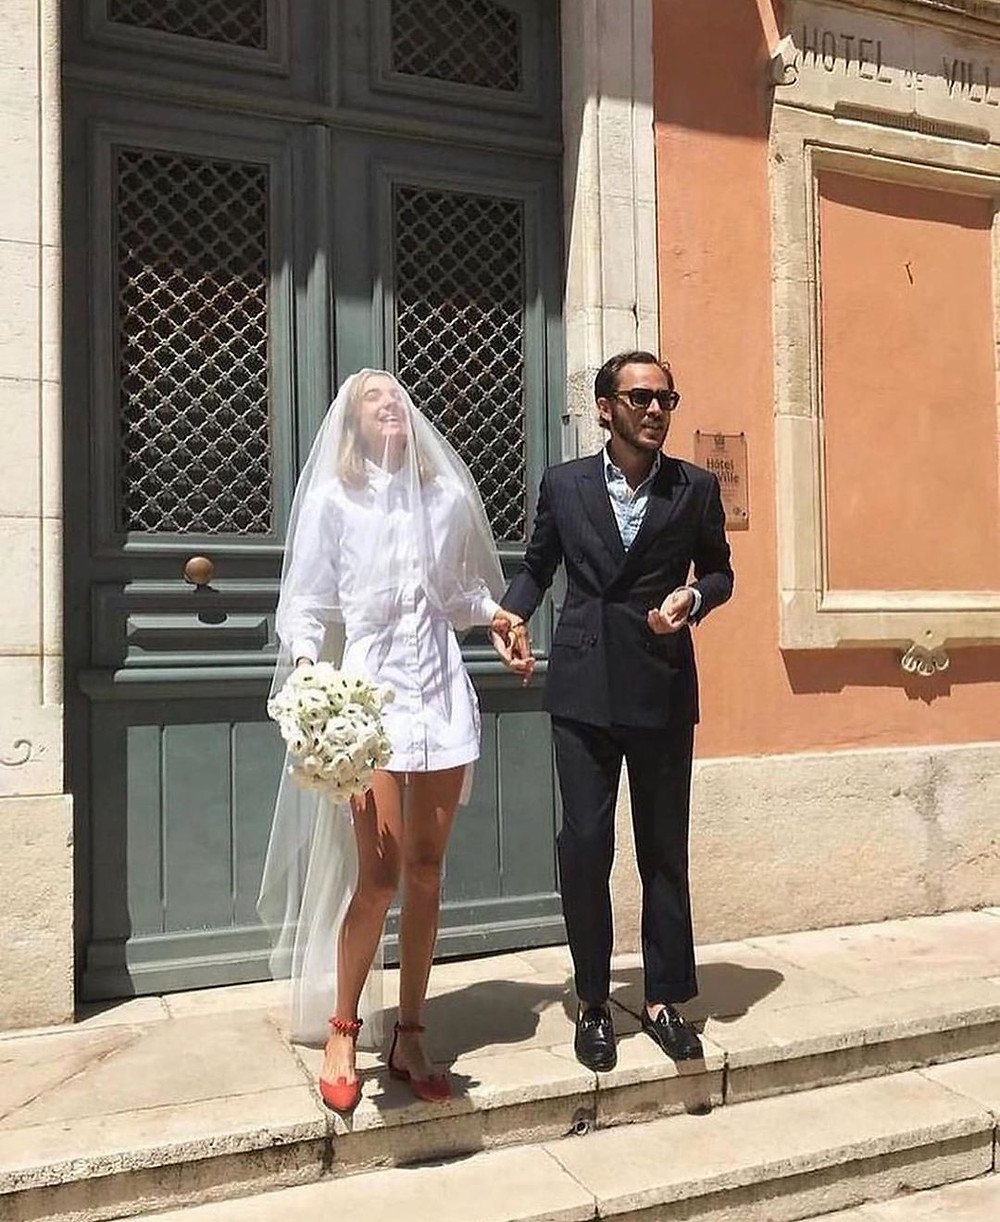 Lolita Jacobs | Celebrities Wedding Shoes | So Into You Shoes